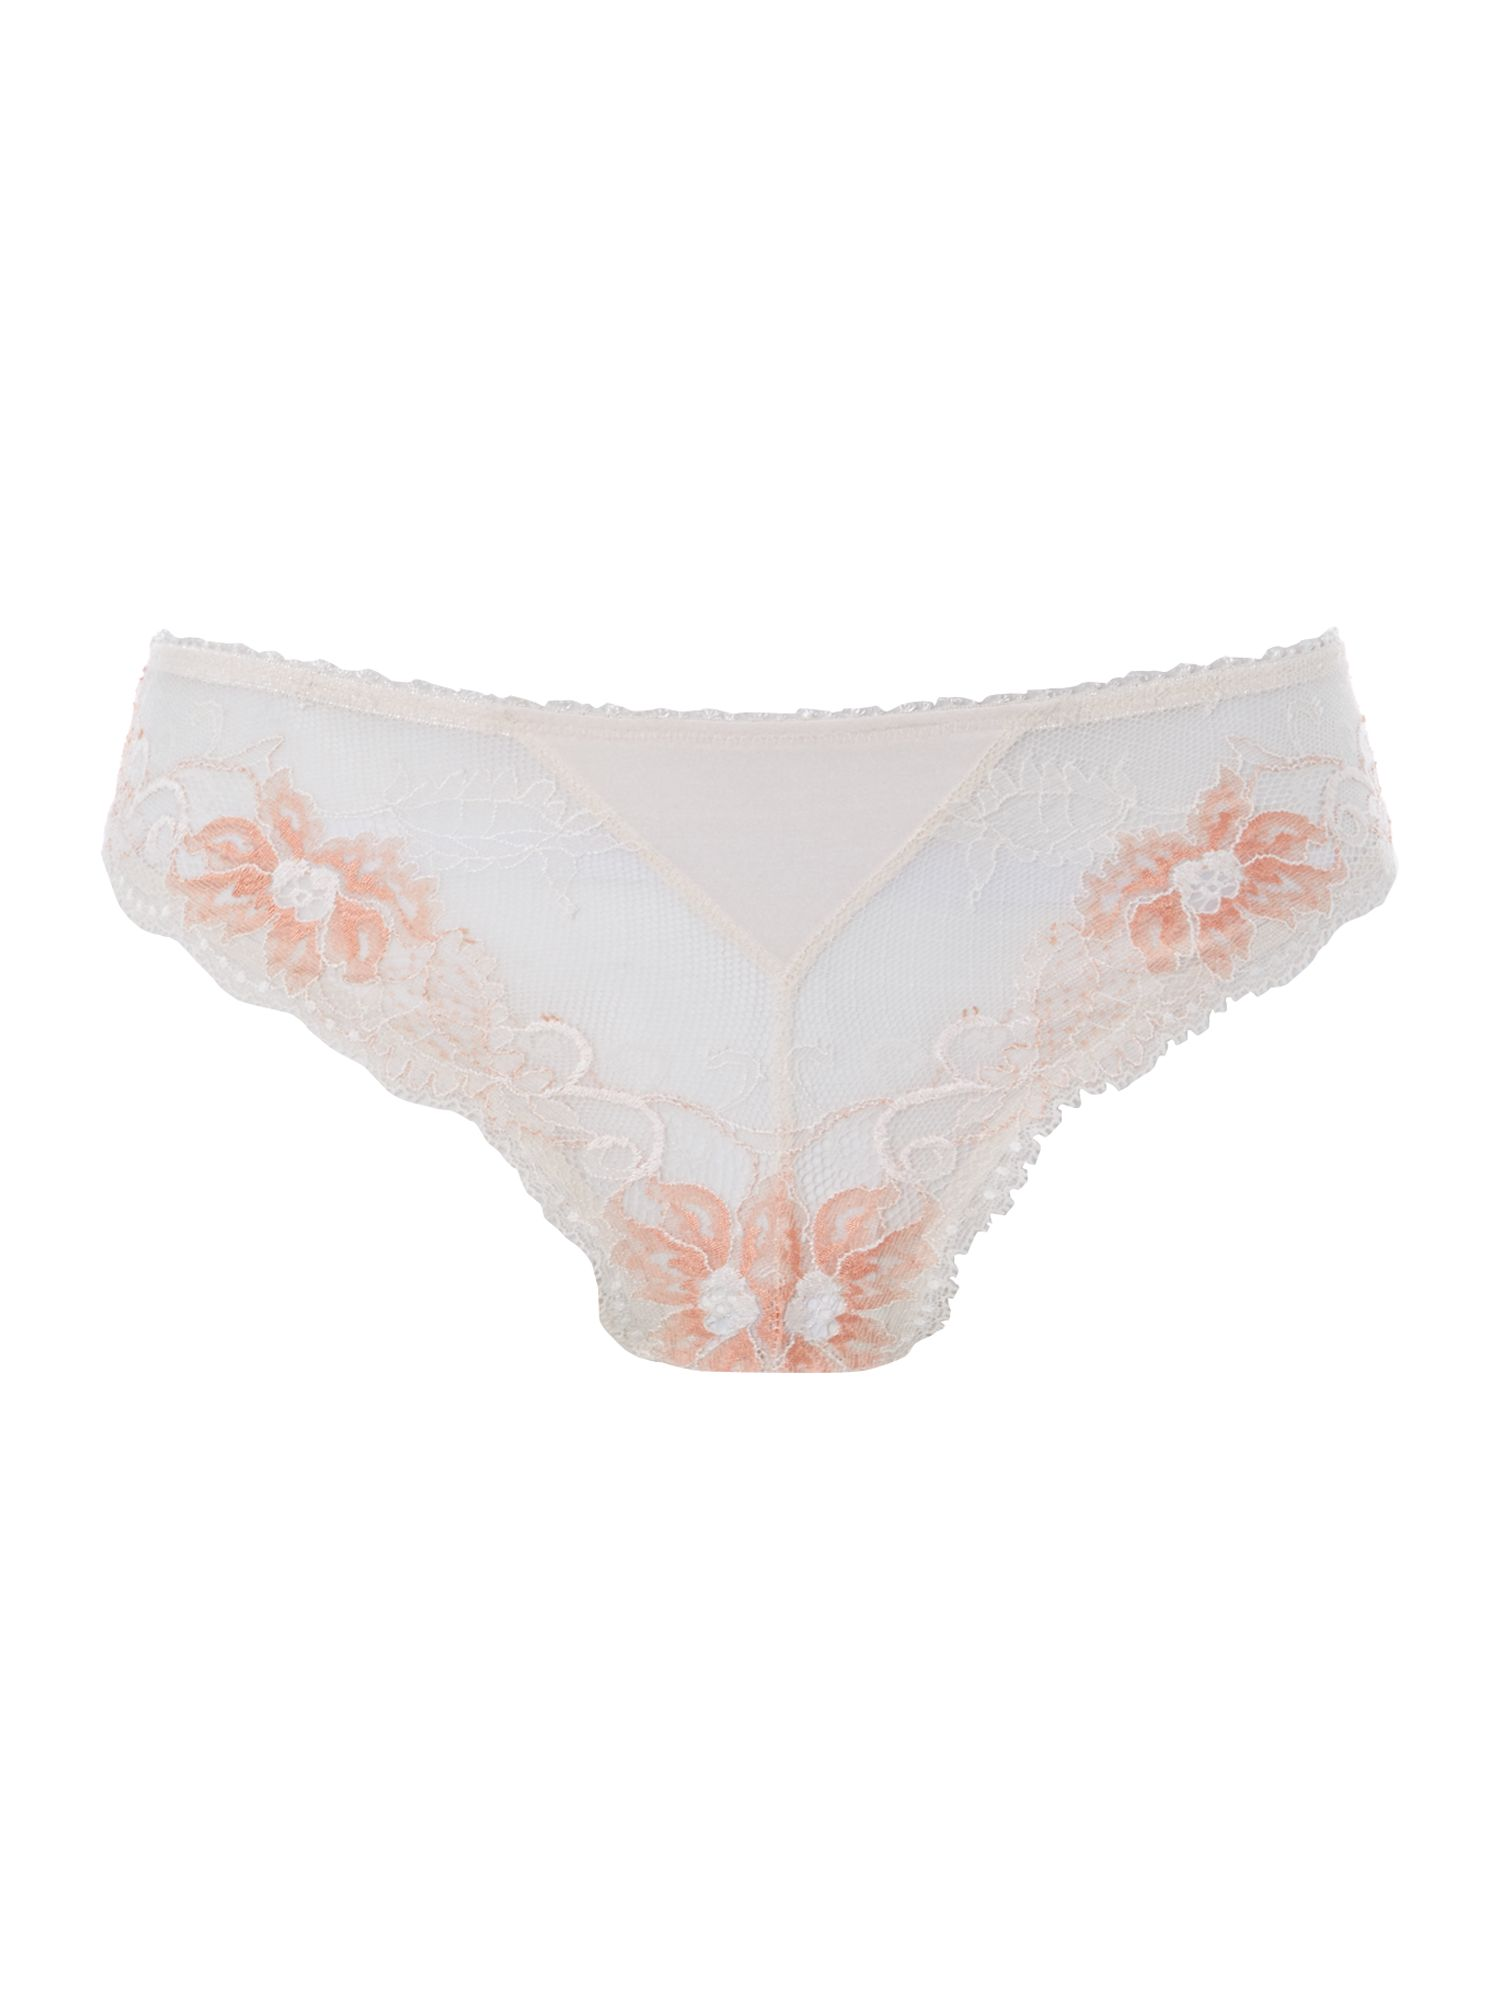 Elegance tonal lace brief